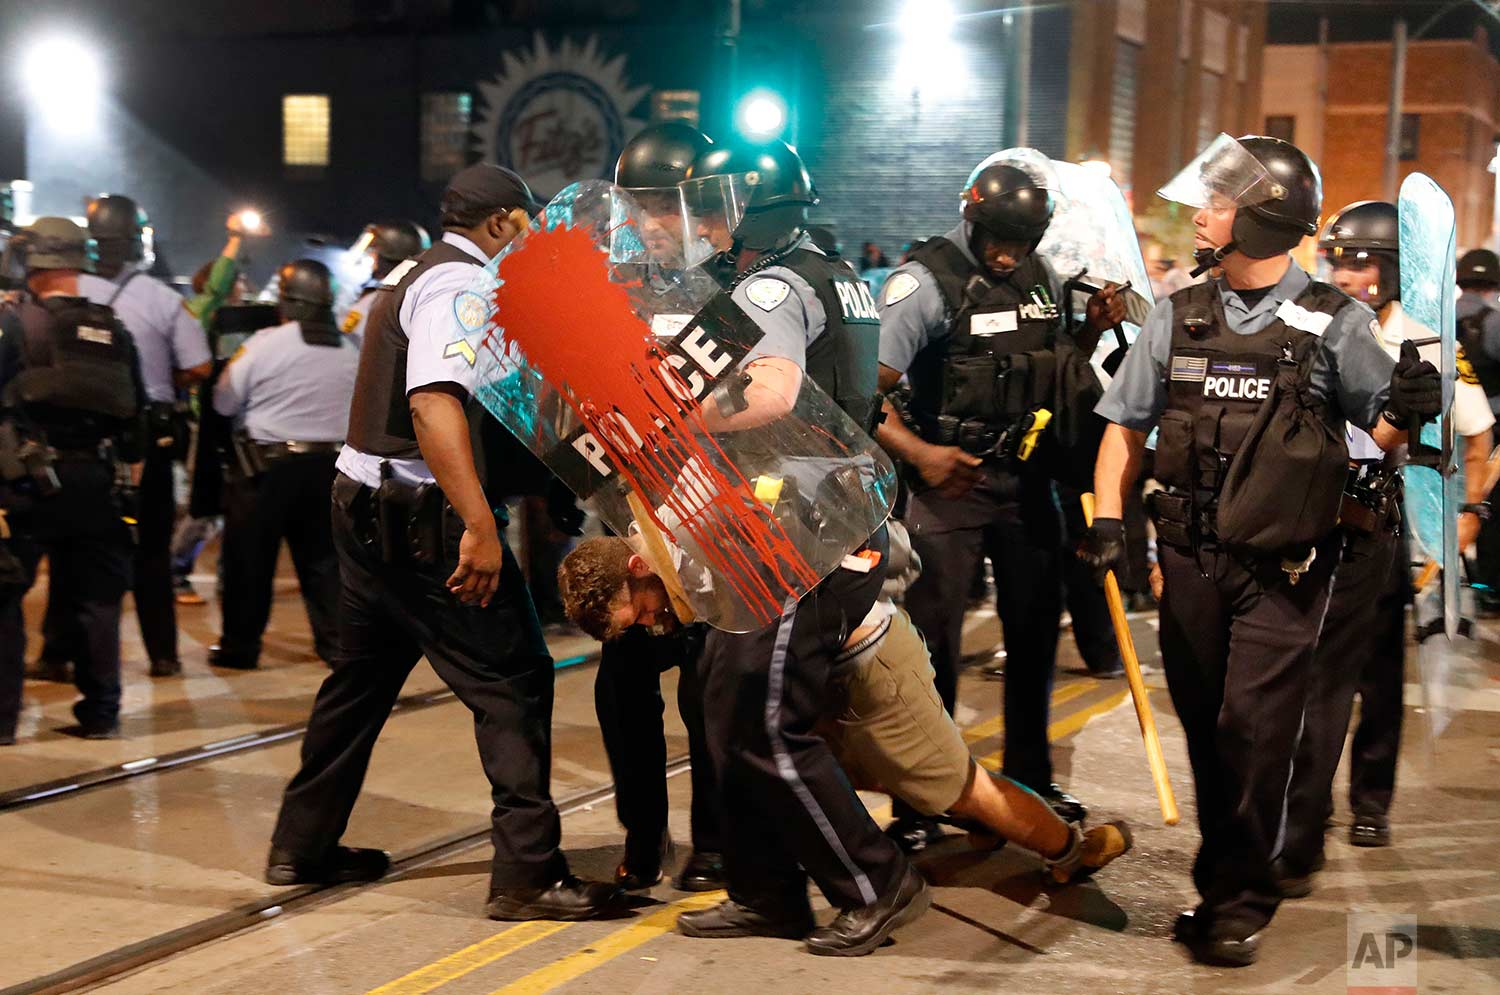 "Police arrest a man as they try to clear a violent crowd Saturday, Sept. 16, 2017, in University City, Mo. Earlier, protesters marched peacefully in response to a not guilty verdict in the trial of former St. Louis police officer Jason Stockley. The American Civil Liberties Union of Missouri filed a lawsuit against the city of St. Louis on Friday over what it called ""unlawful and unconstitutional action"" during demonstrations that followed the acquittal of a white former police officer in the death of a black man. (AP Photo/Jeff Roberson)"